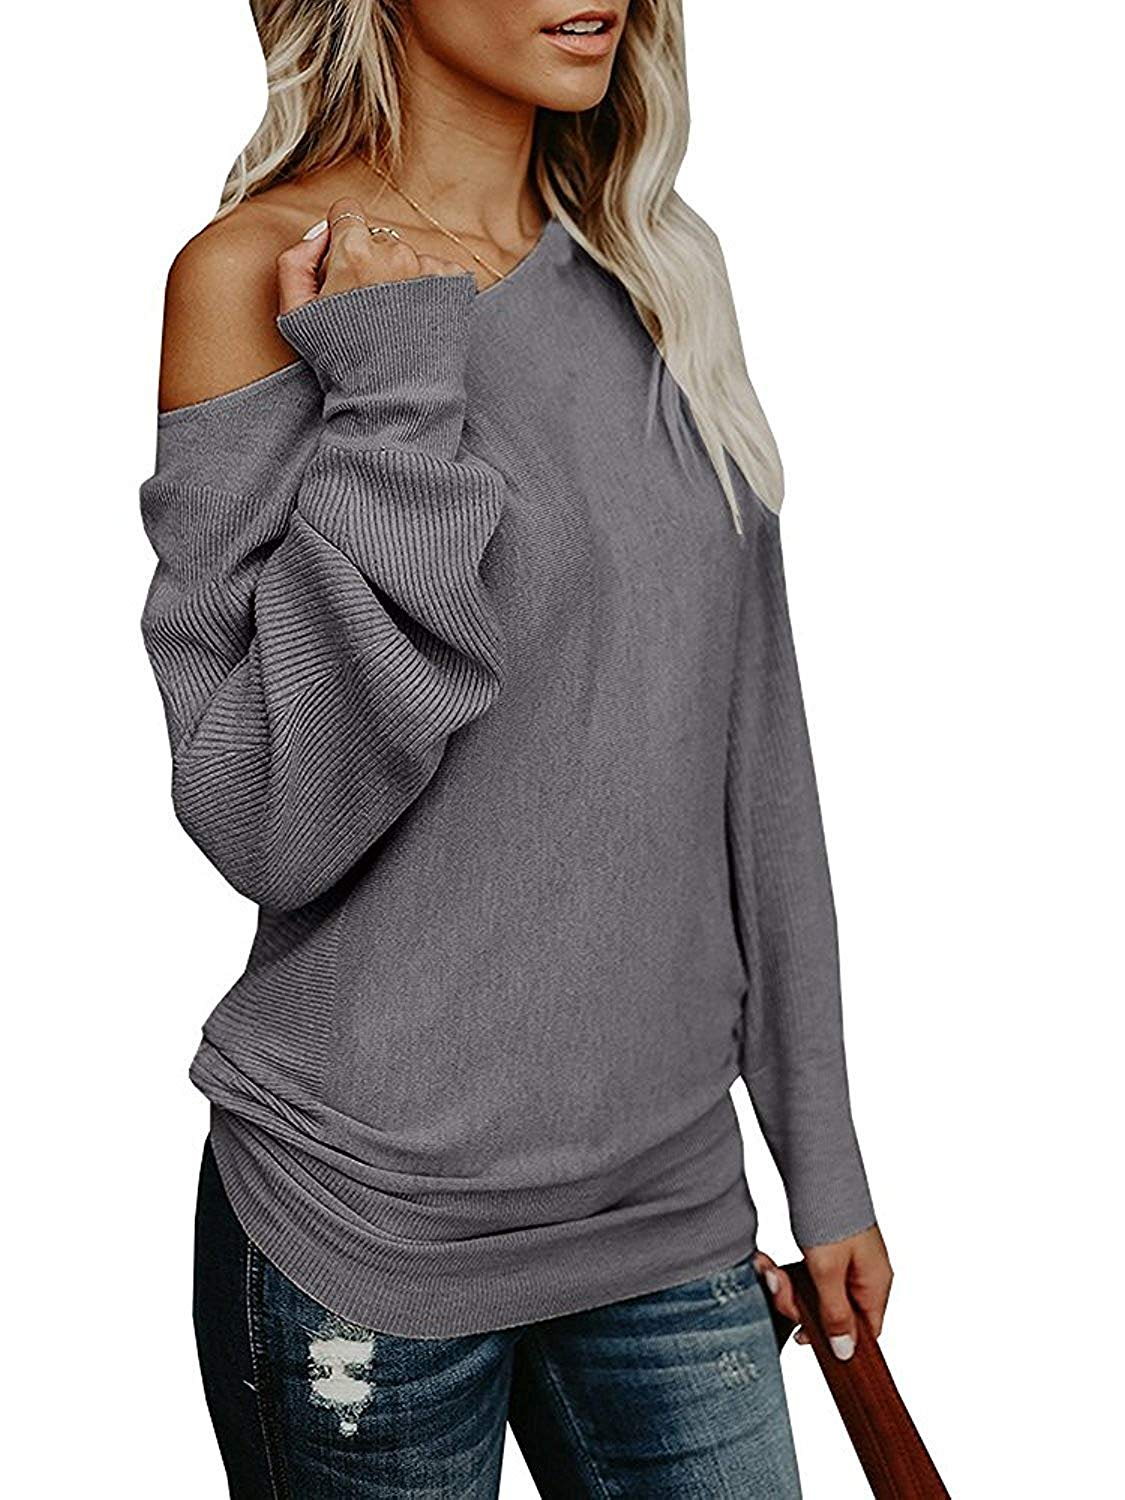 dc91ac231b3e3d Get Quotations · Womens Oversized Sweaters Off The Shoulder Cute Chunky  Knitted Tunic Pullover